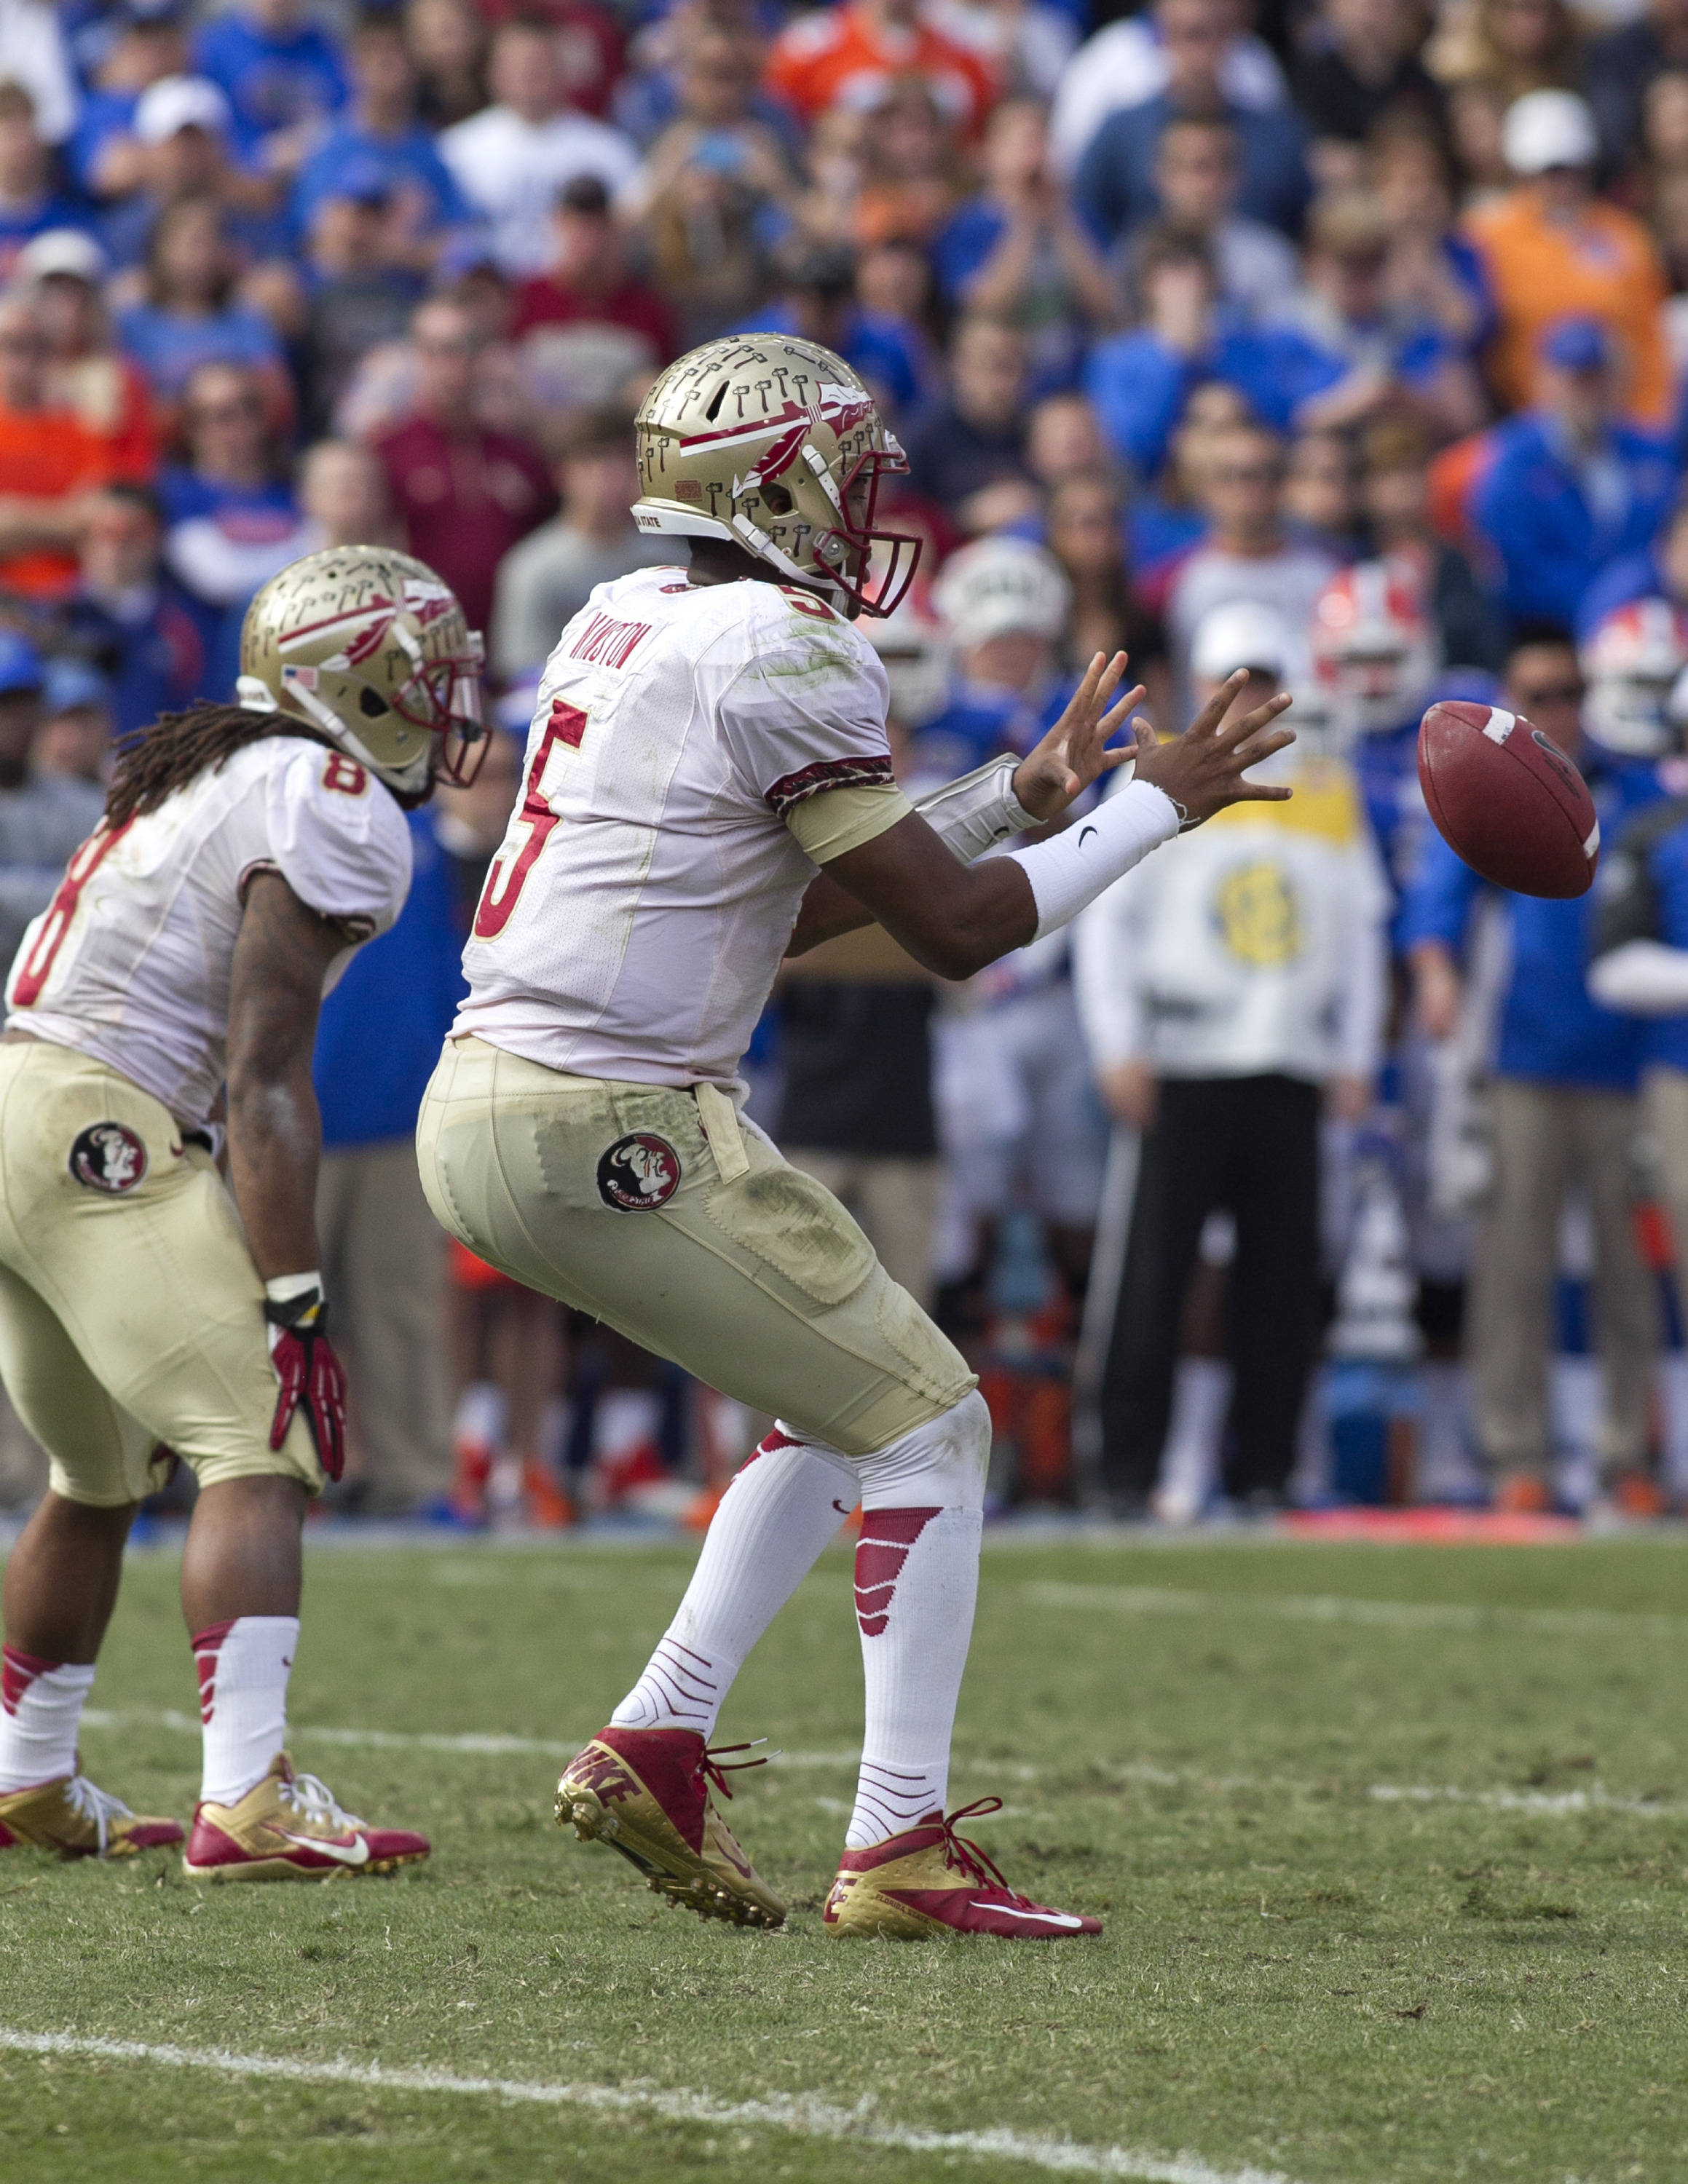 Jameis Winston (5) taking a snap, FSU vs Florida, 11-30-13,  (Photo by Steve Musco)